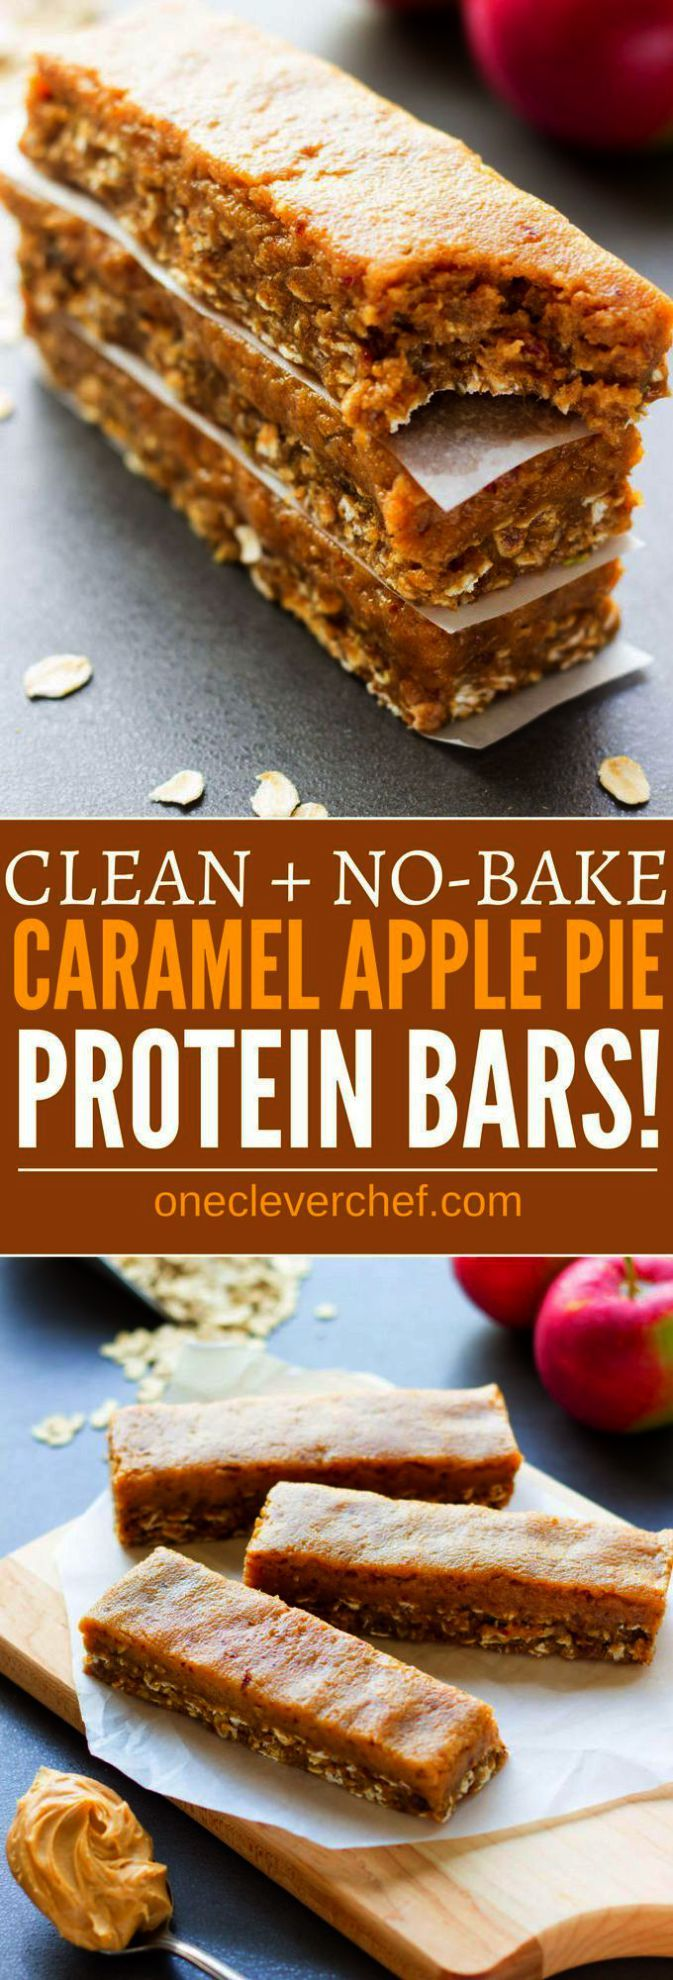 Pin on Protein Snacks